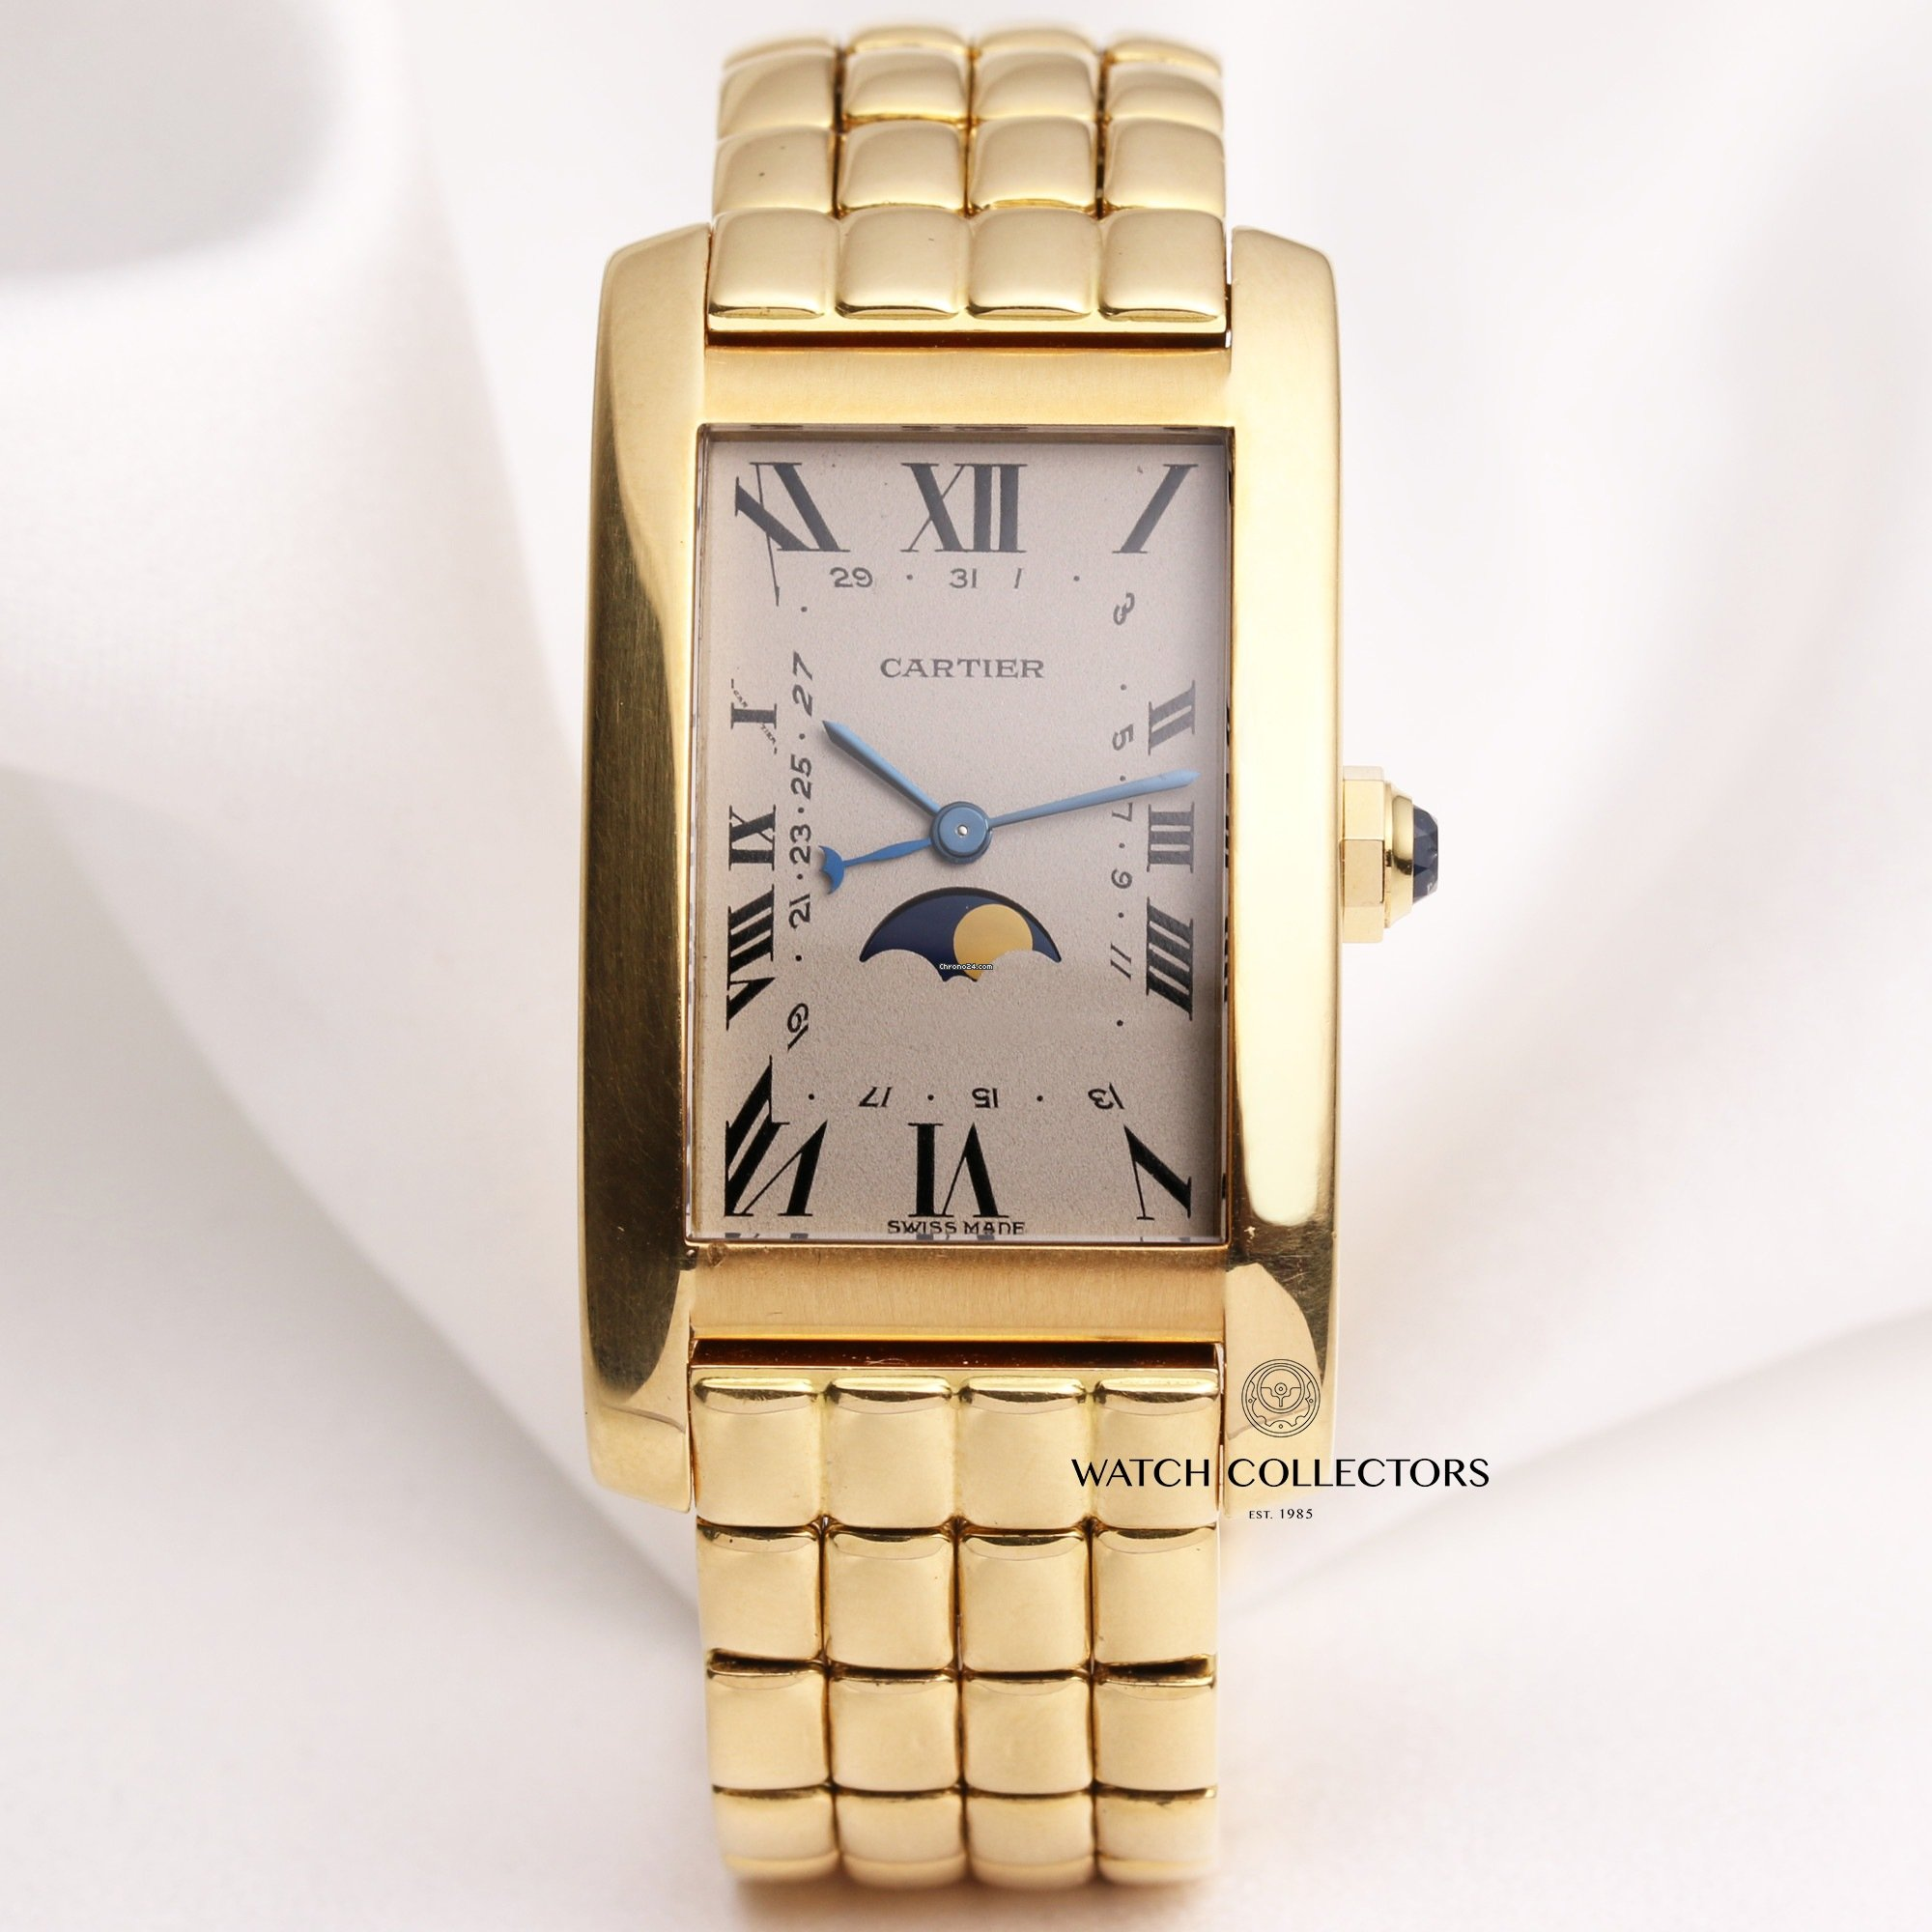 5f2401f6ea Cartier Tank Americaine Moon Phase 18K Yellow Gold for £5